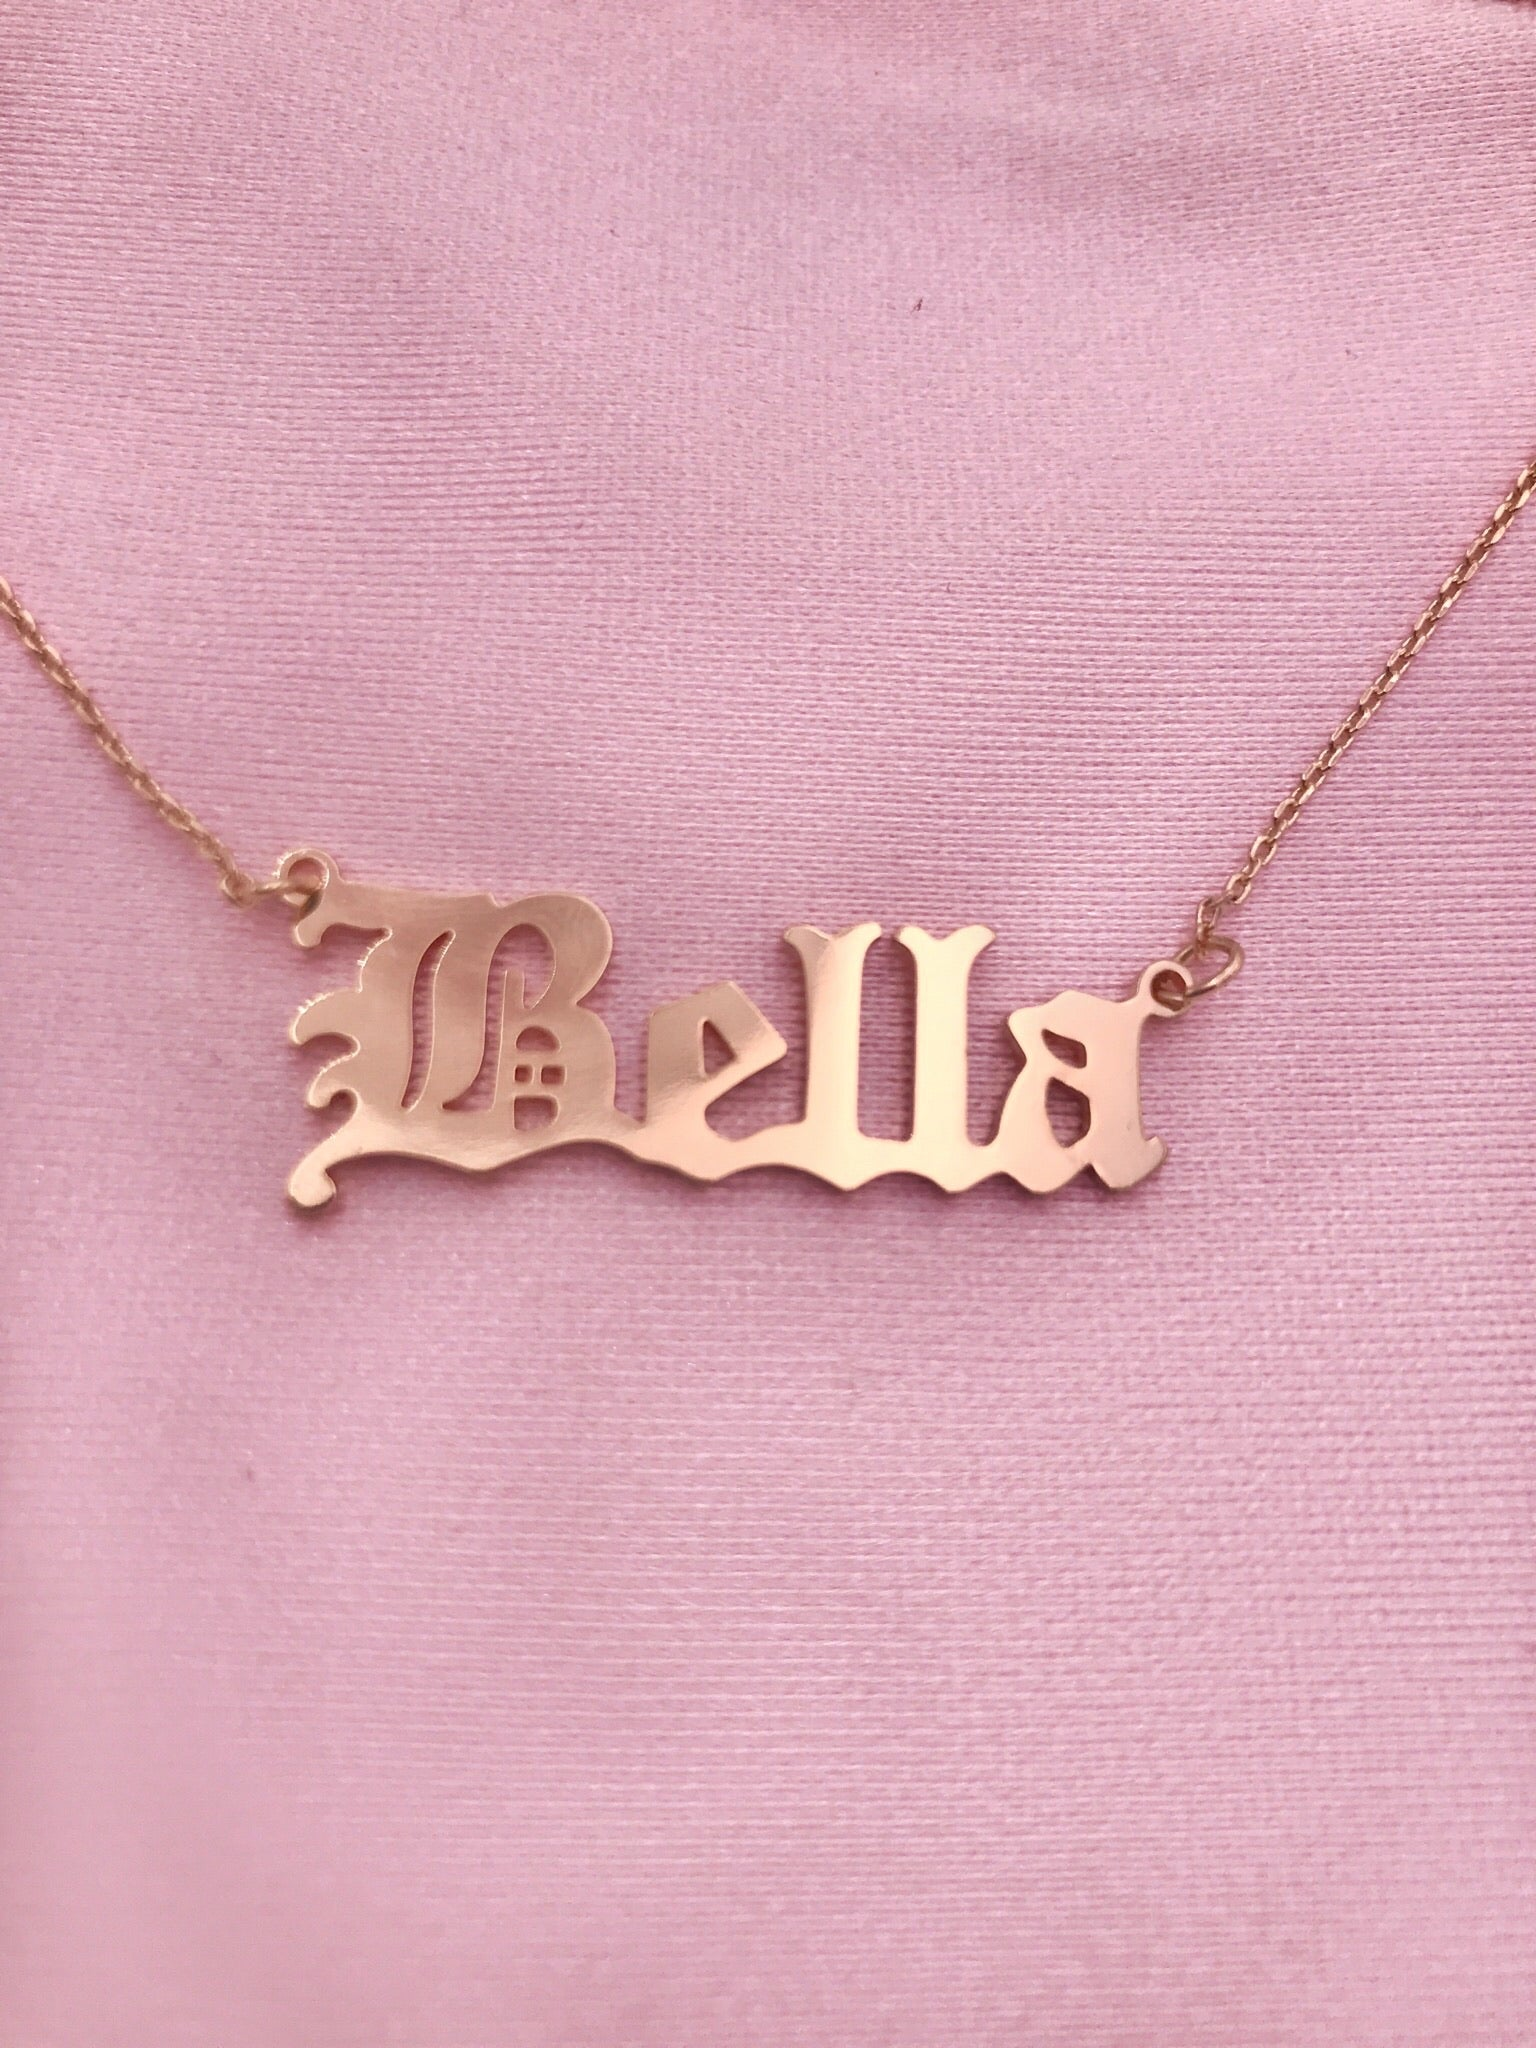 gold necklace spells out BELLA in old font. chain has clip at end